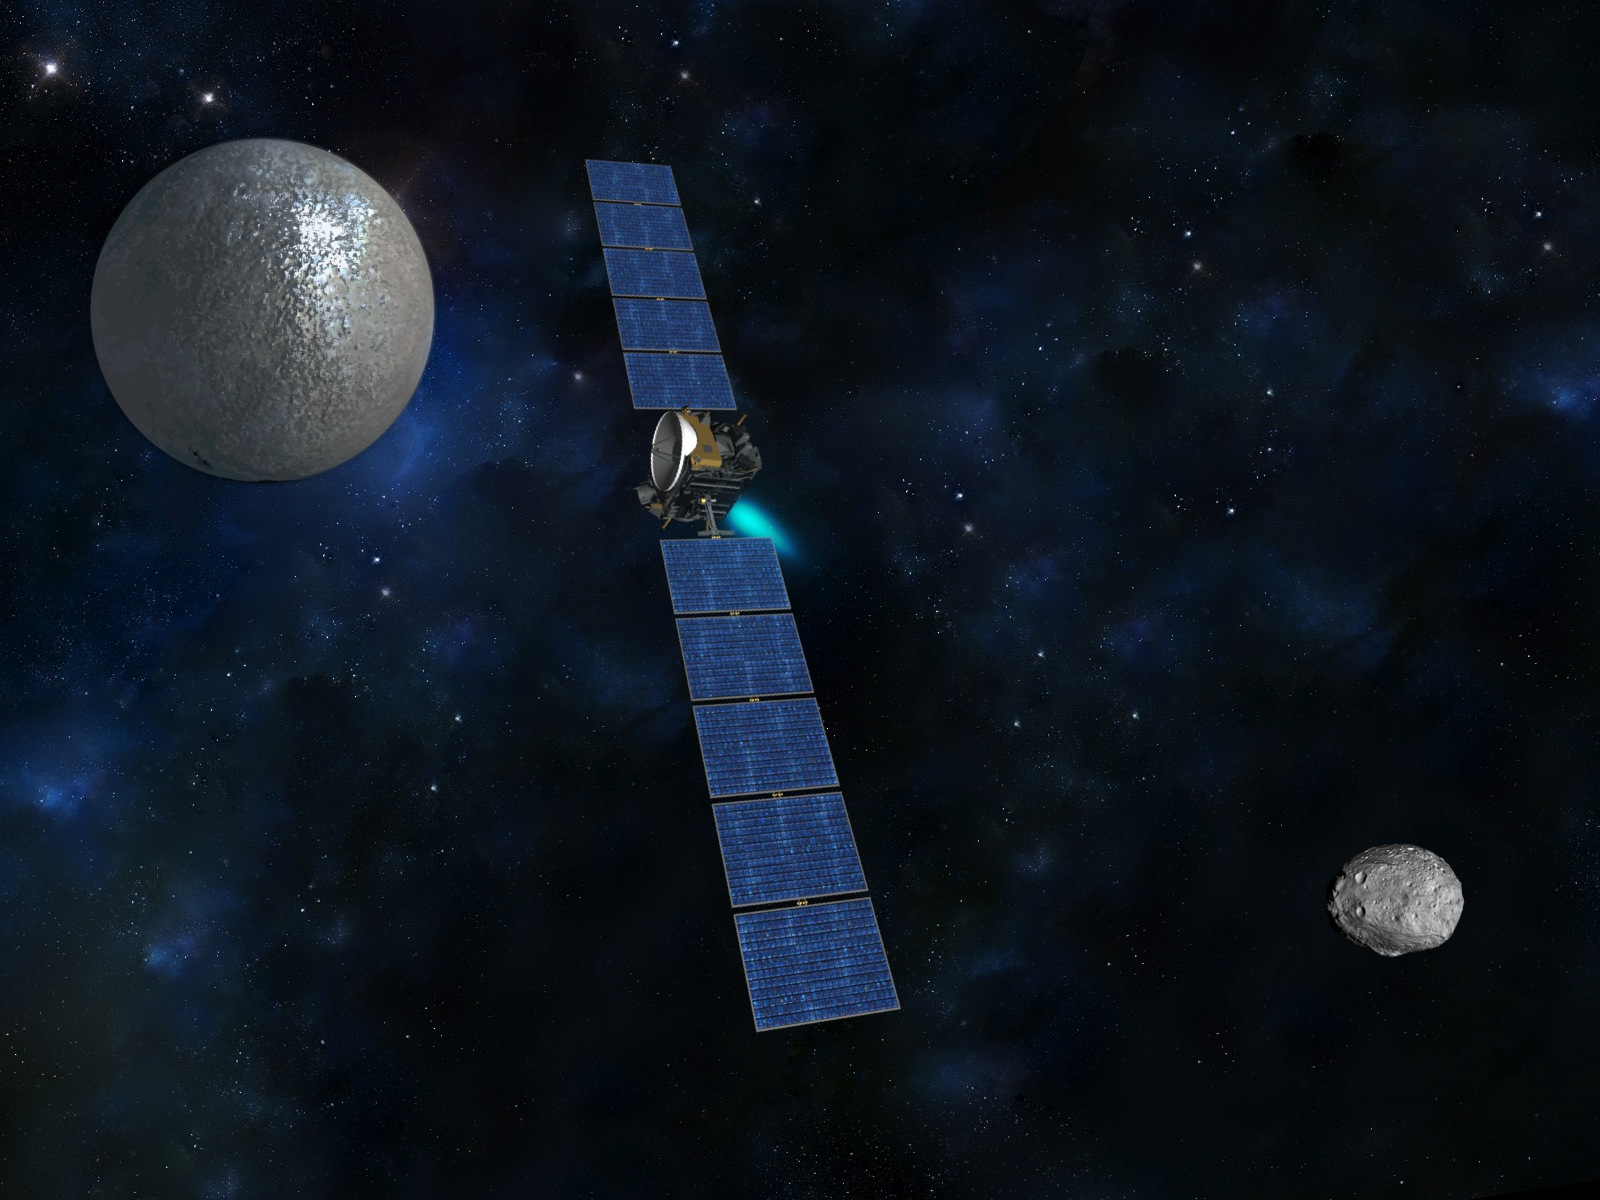 Dawn from Vesta to Ceres